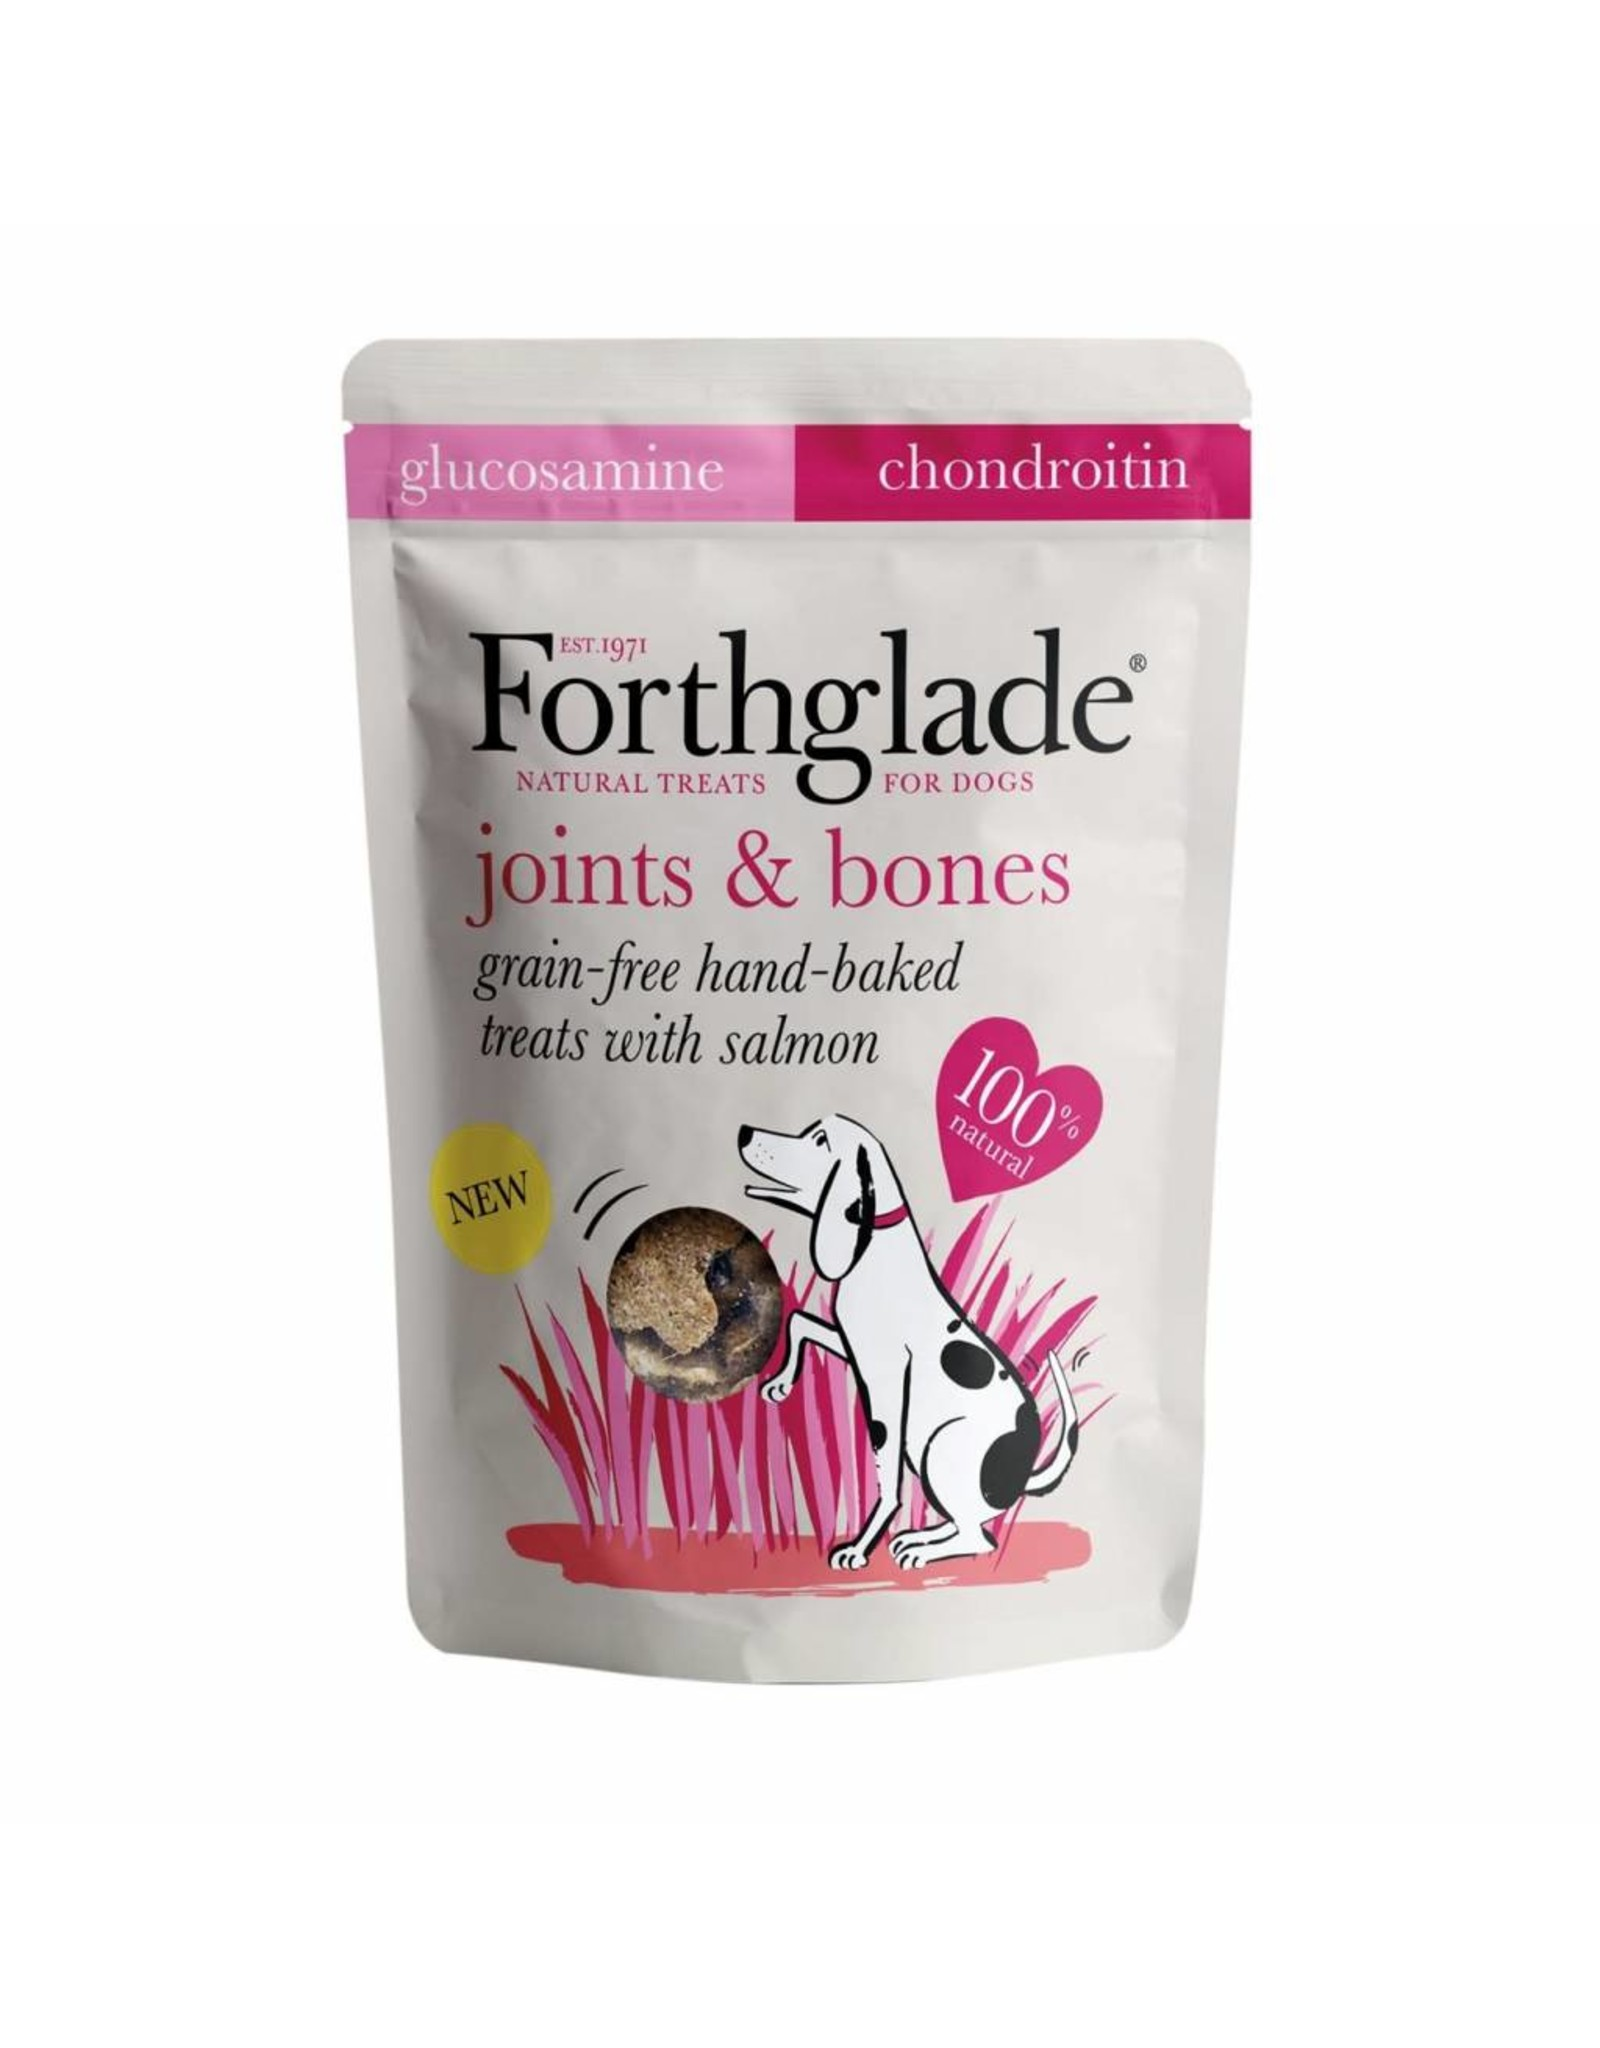 Forthglade Joint & Bones Grain Free Hand Baked Dog Treats with Salmon, 150g